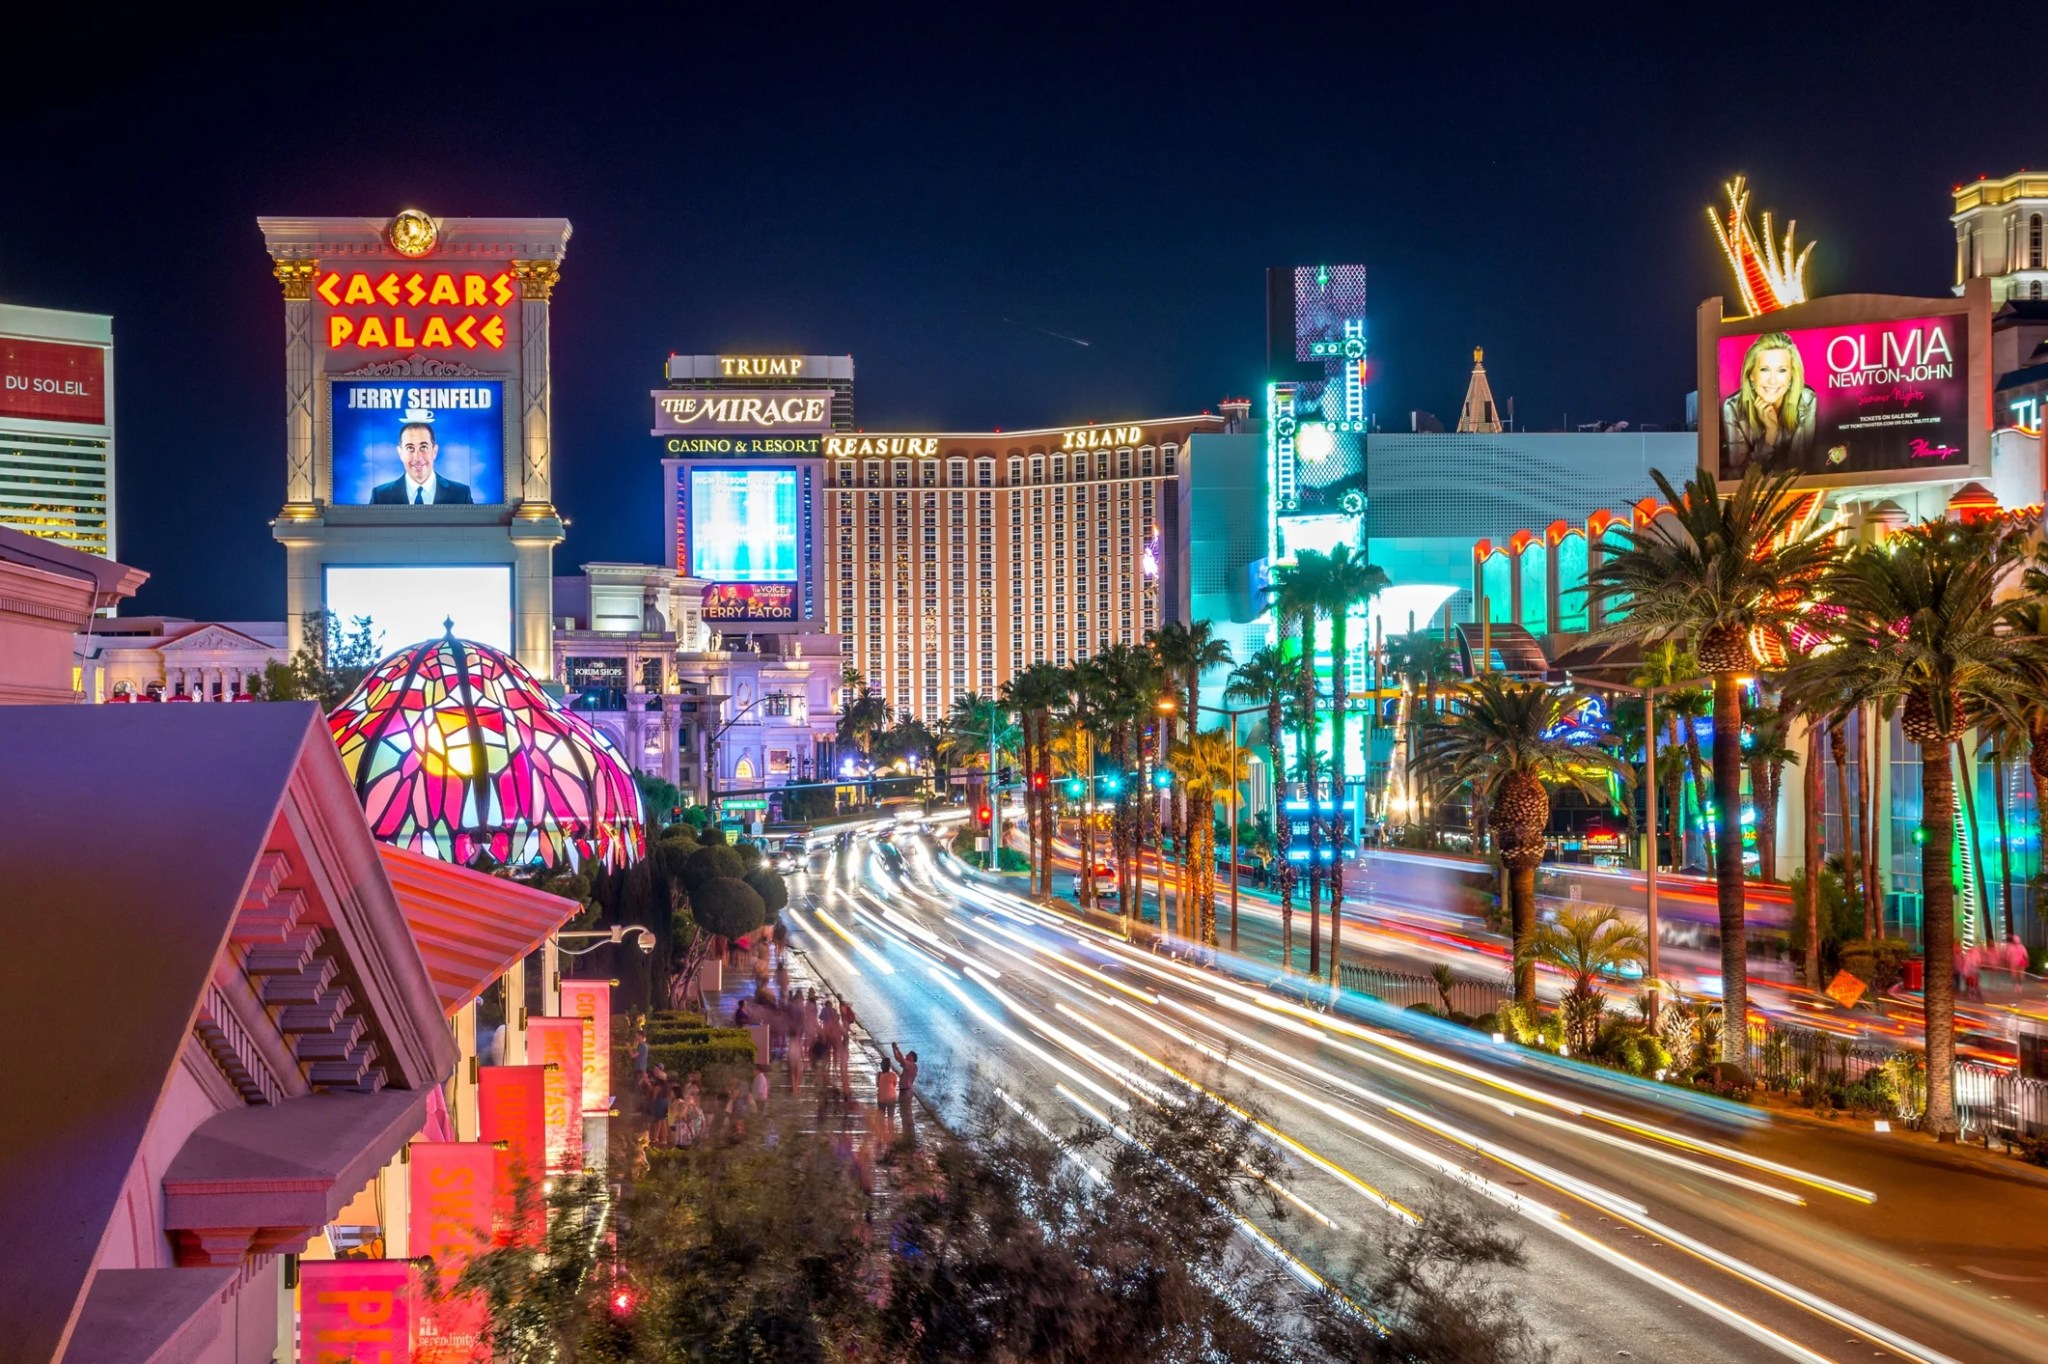 From zero to hero: Saving hundreds in Vegas with an easy status match